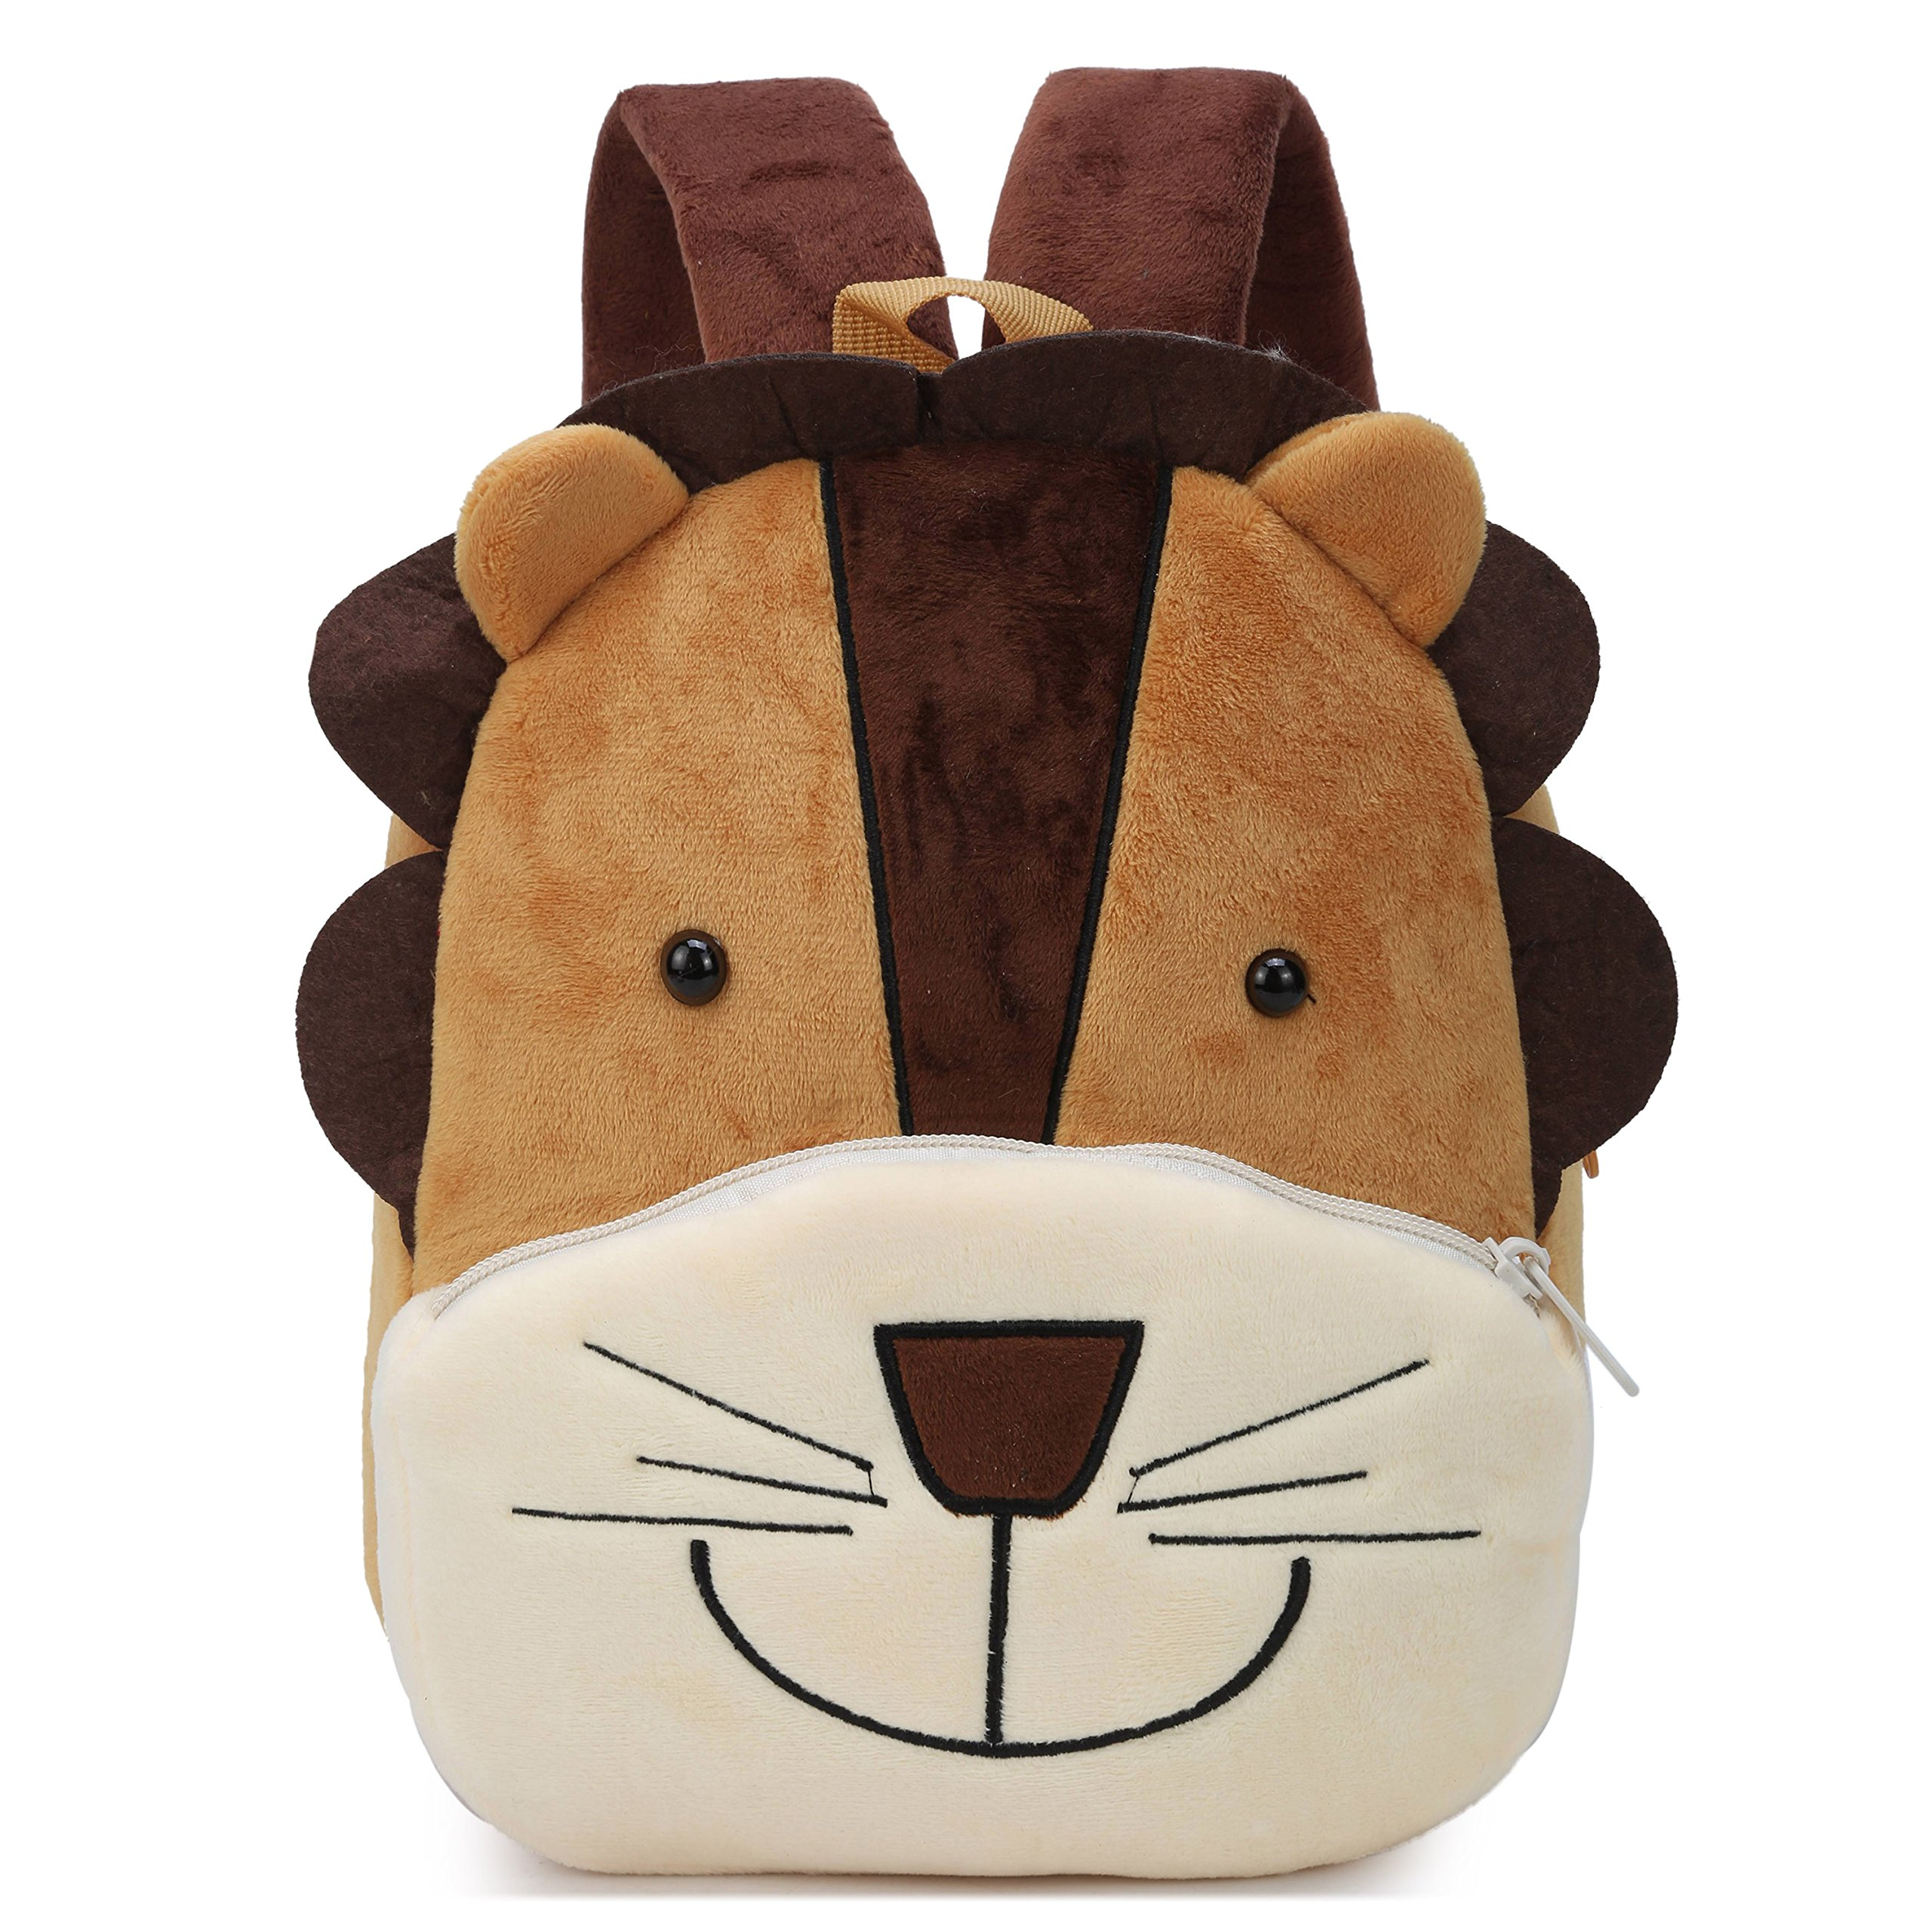 Cute Small Toddler Backpack for Girl Boy Kids Plush 3D Animal Cartoon Mini Preschool Bag for Children Age 1-5 Years Old (Brown Lion)